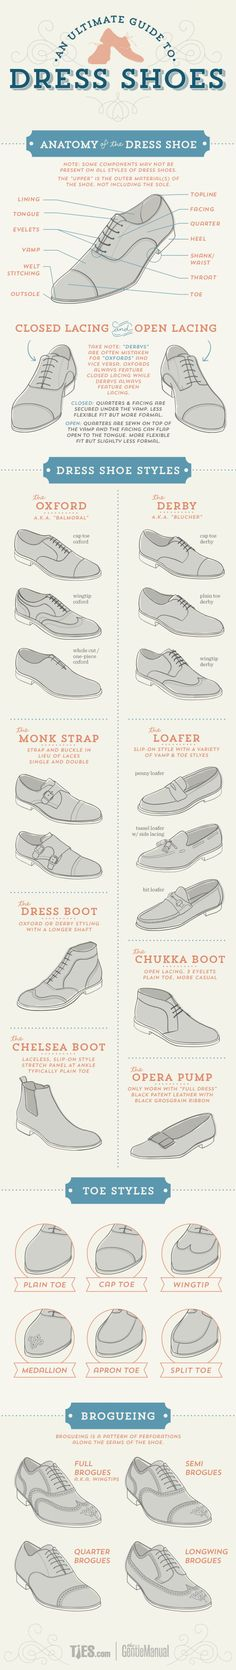 Everything you need to know when it comes to men's dress shoe type and style with this ultimate shoe infographic from Ties.com.